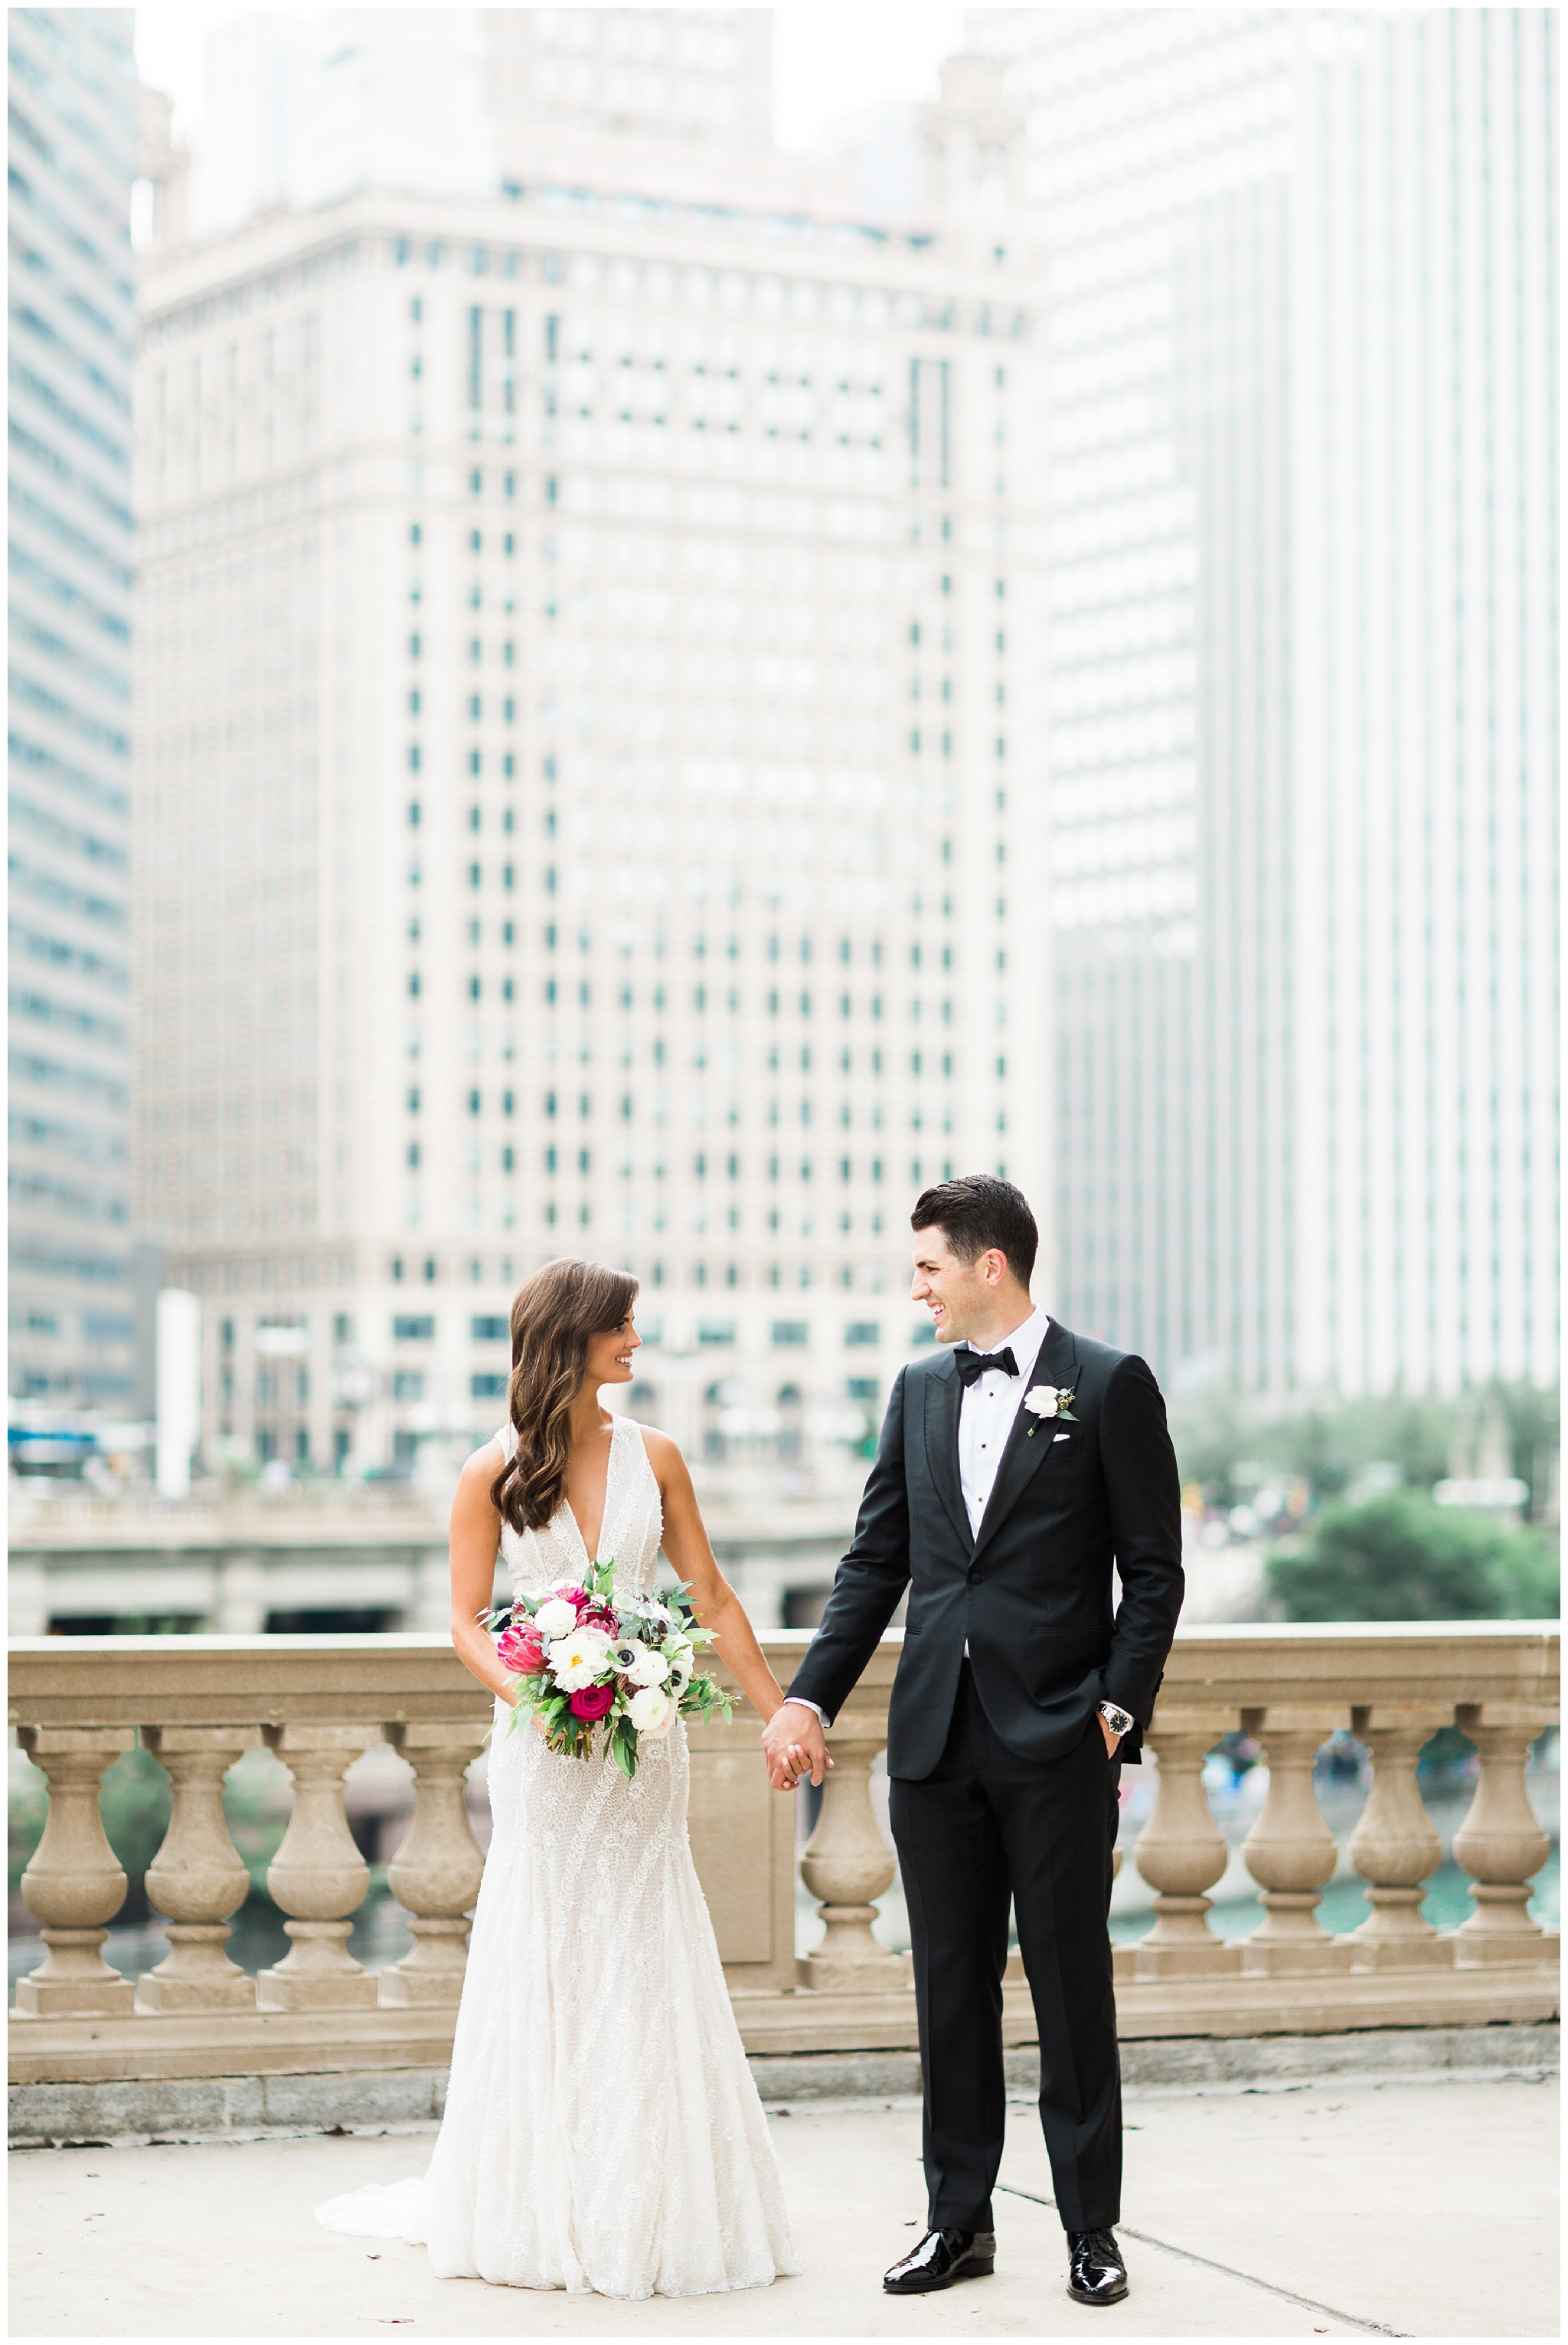 chicagoweddingphotographer_chicagowedding_ivyroomwedding_ivyroomchicago__0110.jpg